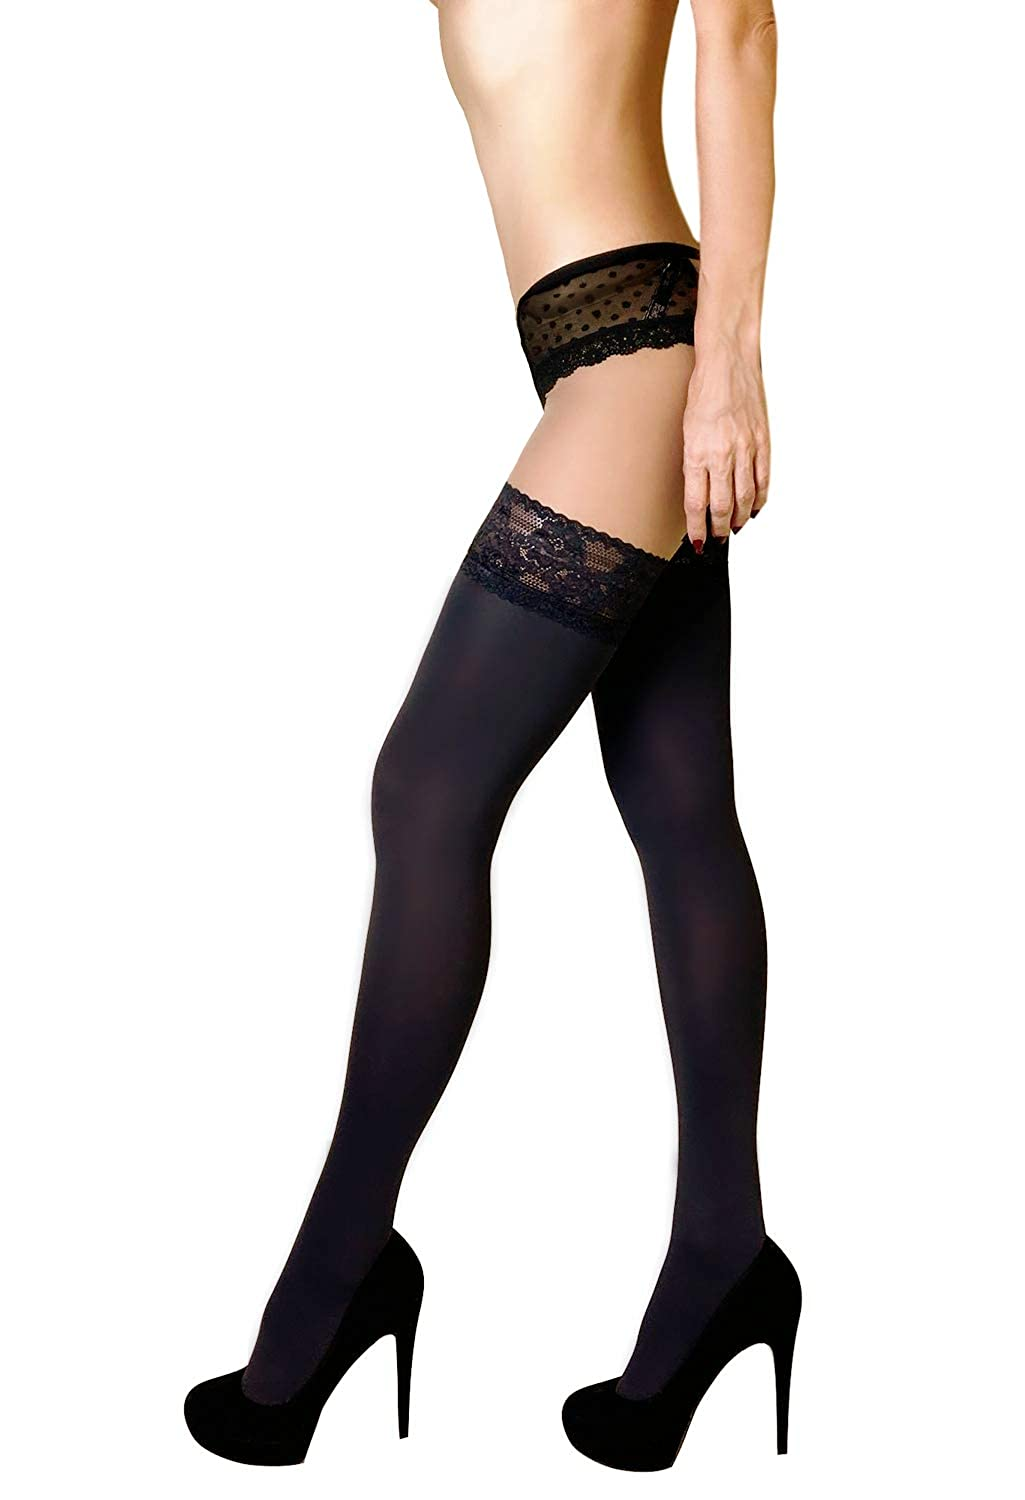 MILA MARUTTI Thigh High Opaque Lace Top Silicone Stockings Nylons 40 Den